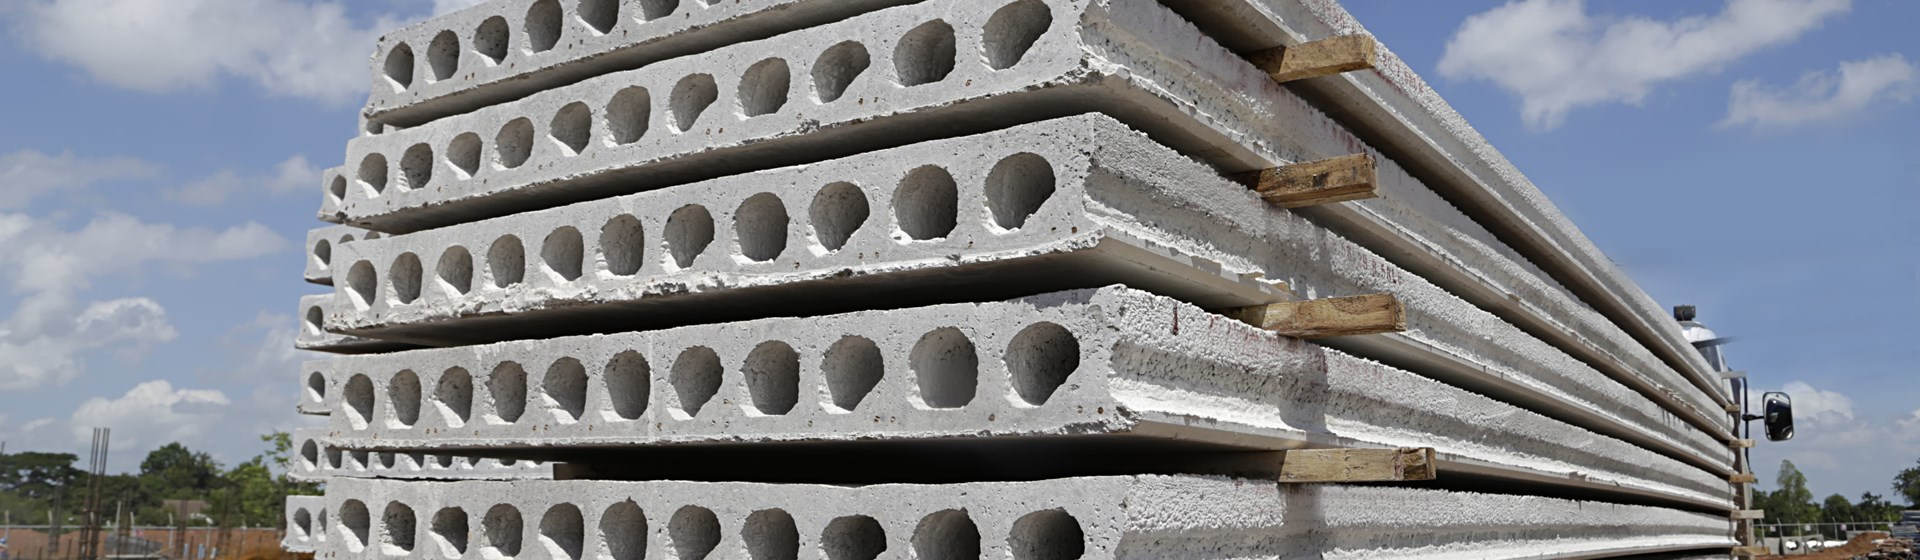 Synthetic fibres as an alternative for steel reinforcement in